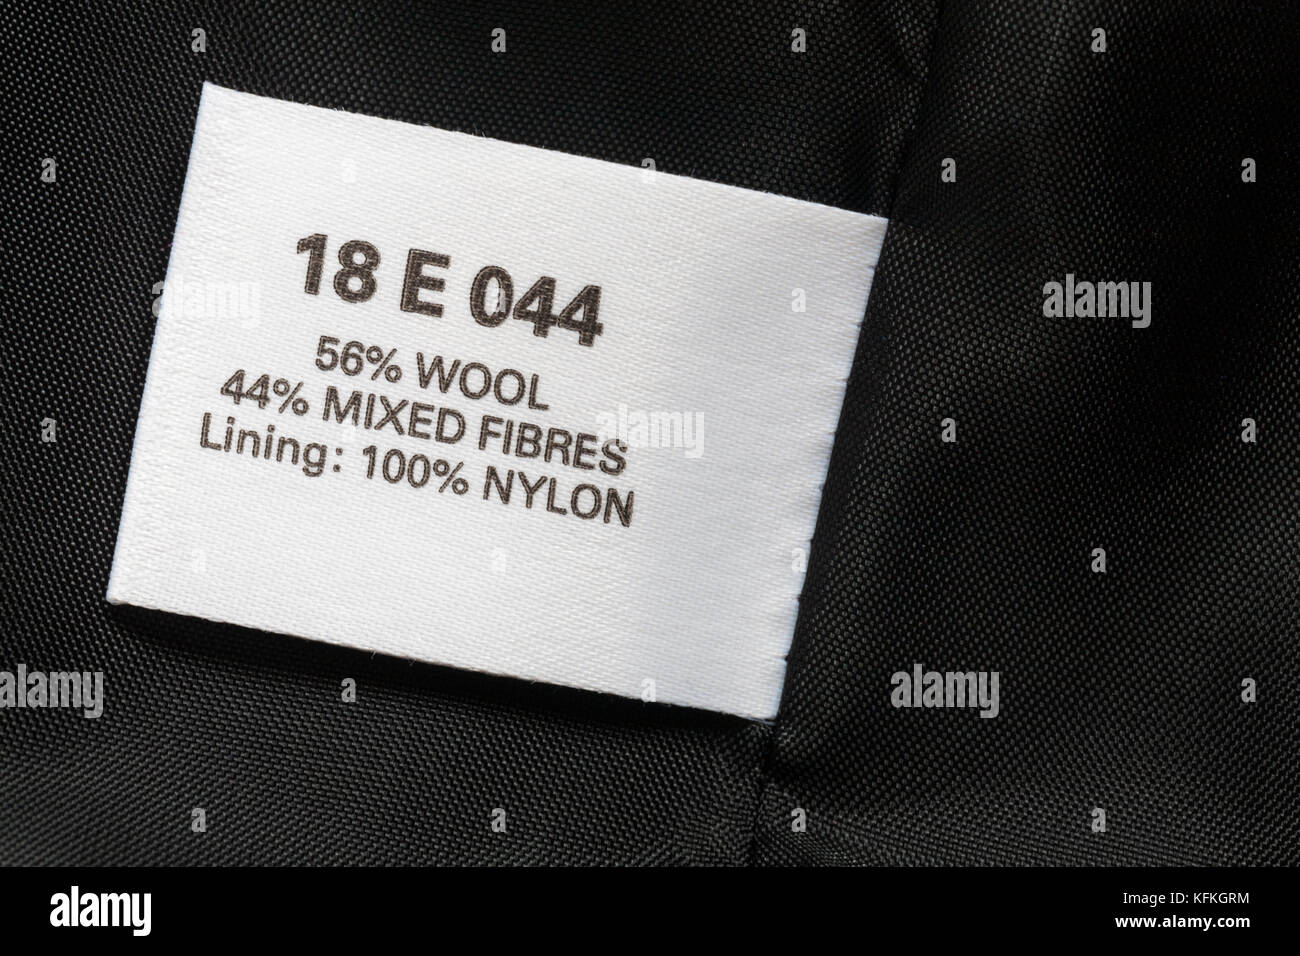 56% wool 44% mixed fibres lining 100% nylon label in woman's jacket - Stock Image